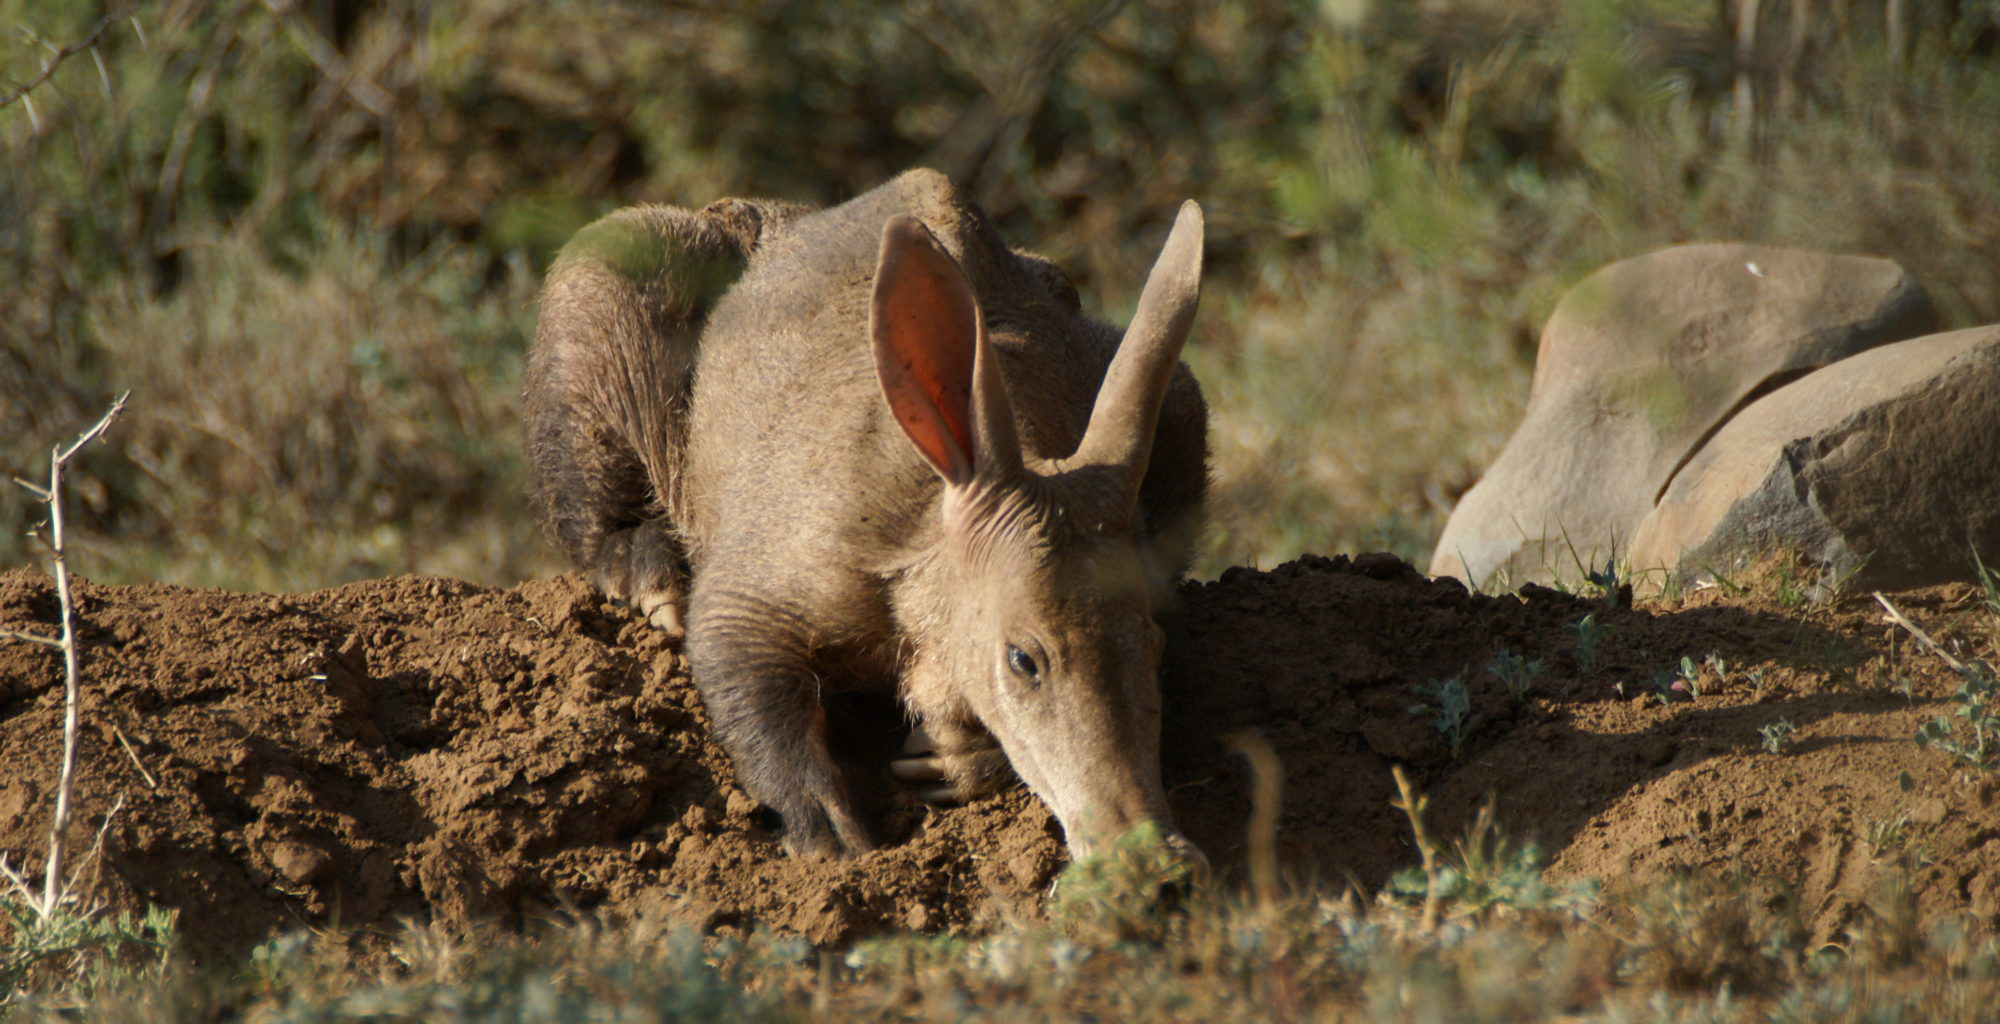 Aardvark in The Great Karoo